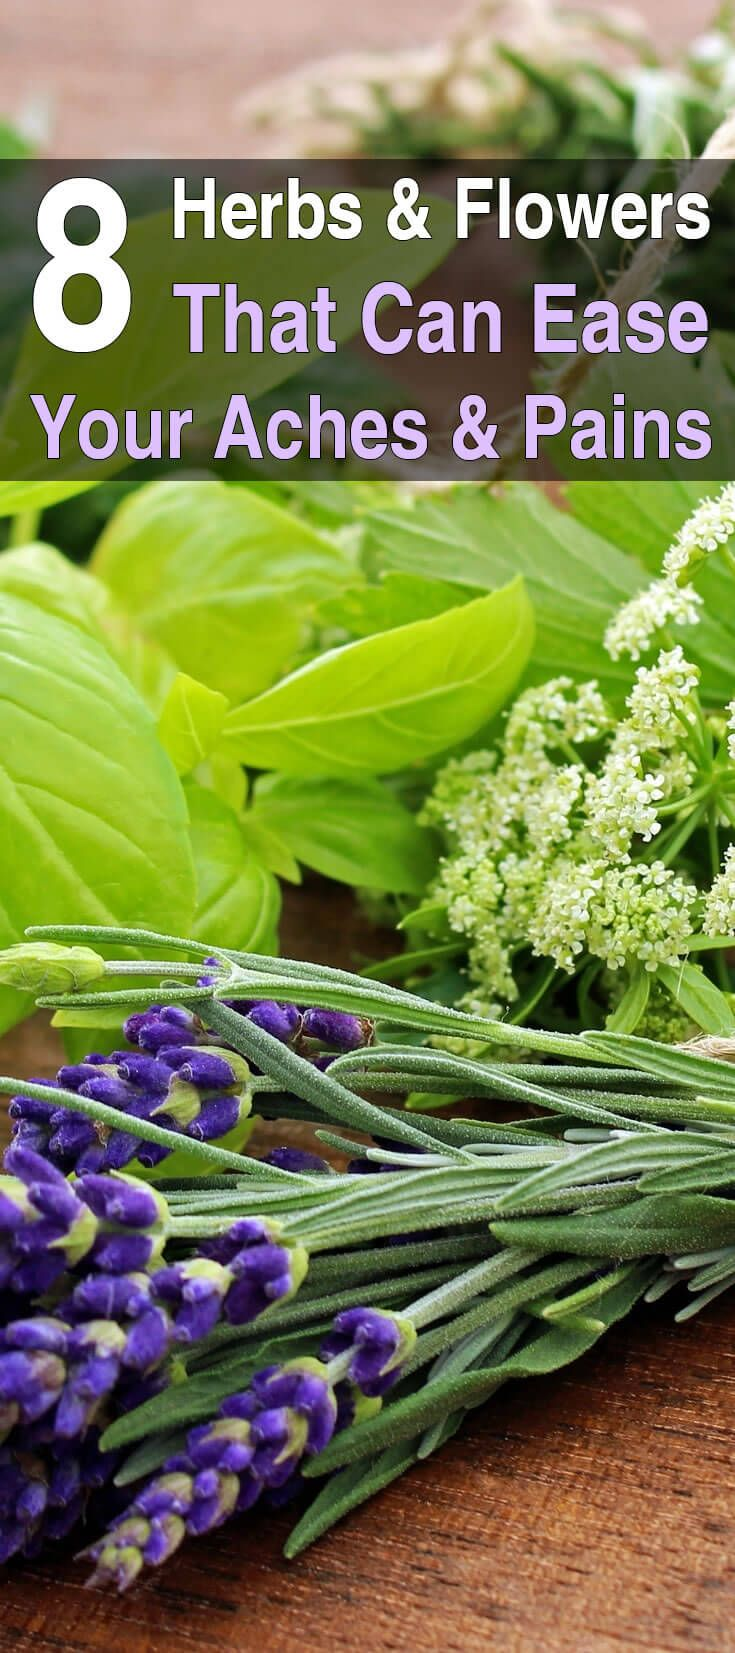 Nature has provided medicinal plants that ease pain, relieve migraines, clear up rashes, reduce swelling and bruising, and treating various illnesses.